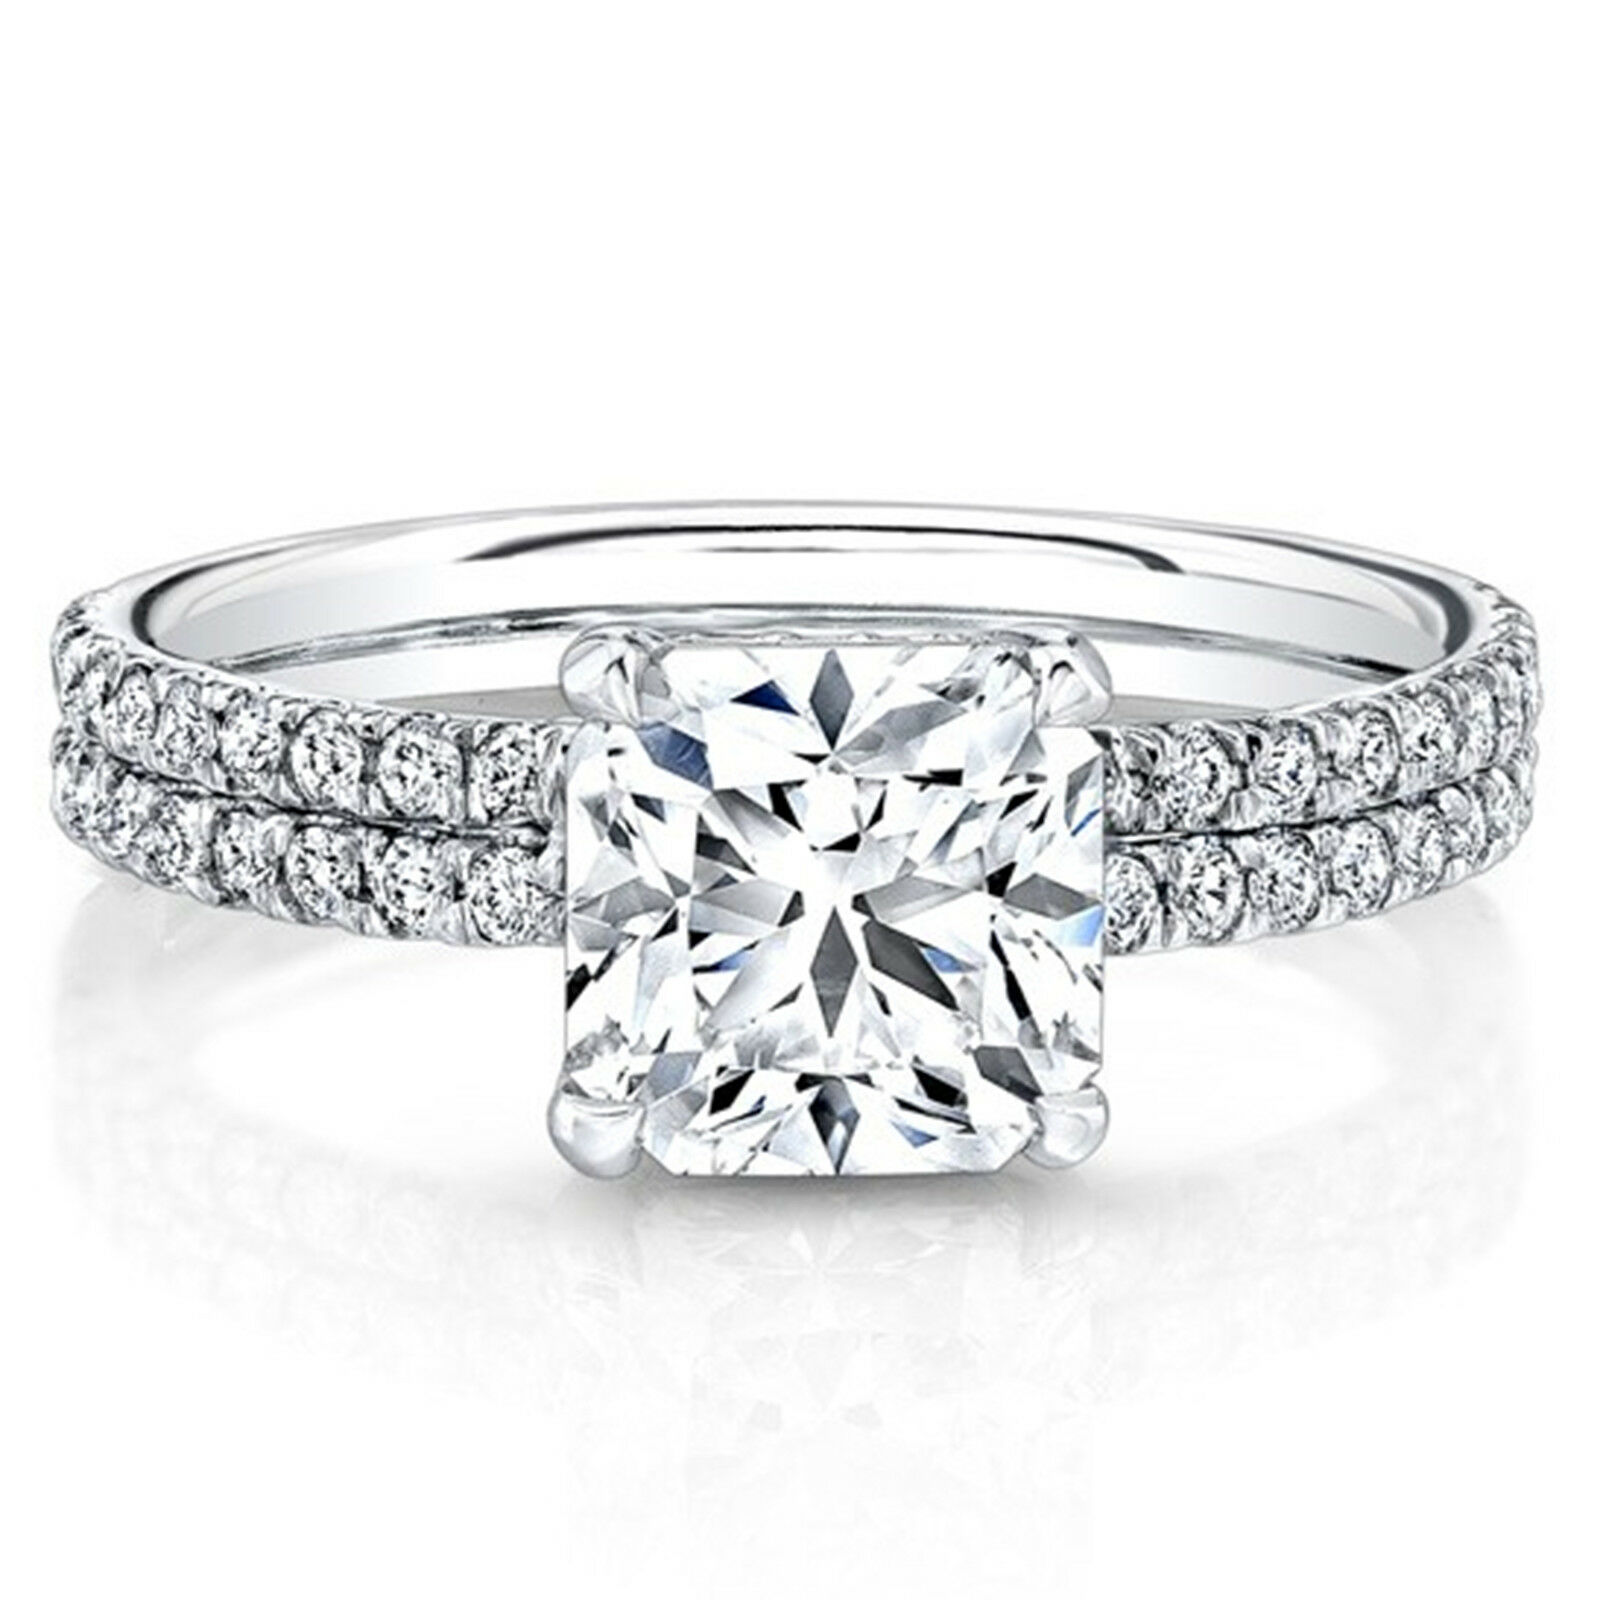 0.77 Ct Certified Real Diamond Engagement Ring 14K Solid White gold Size 5 6 7 8